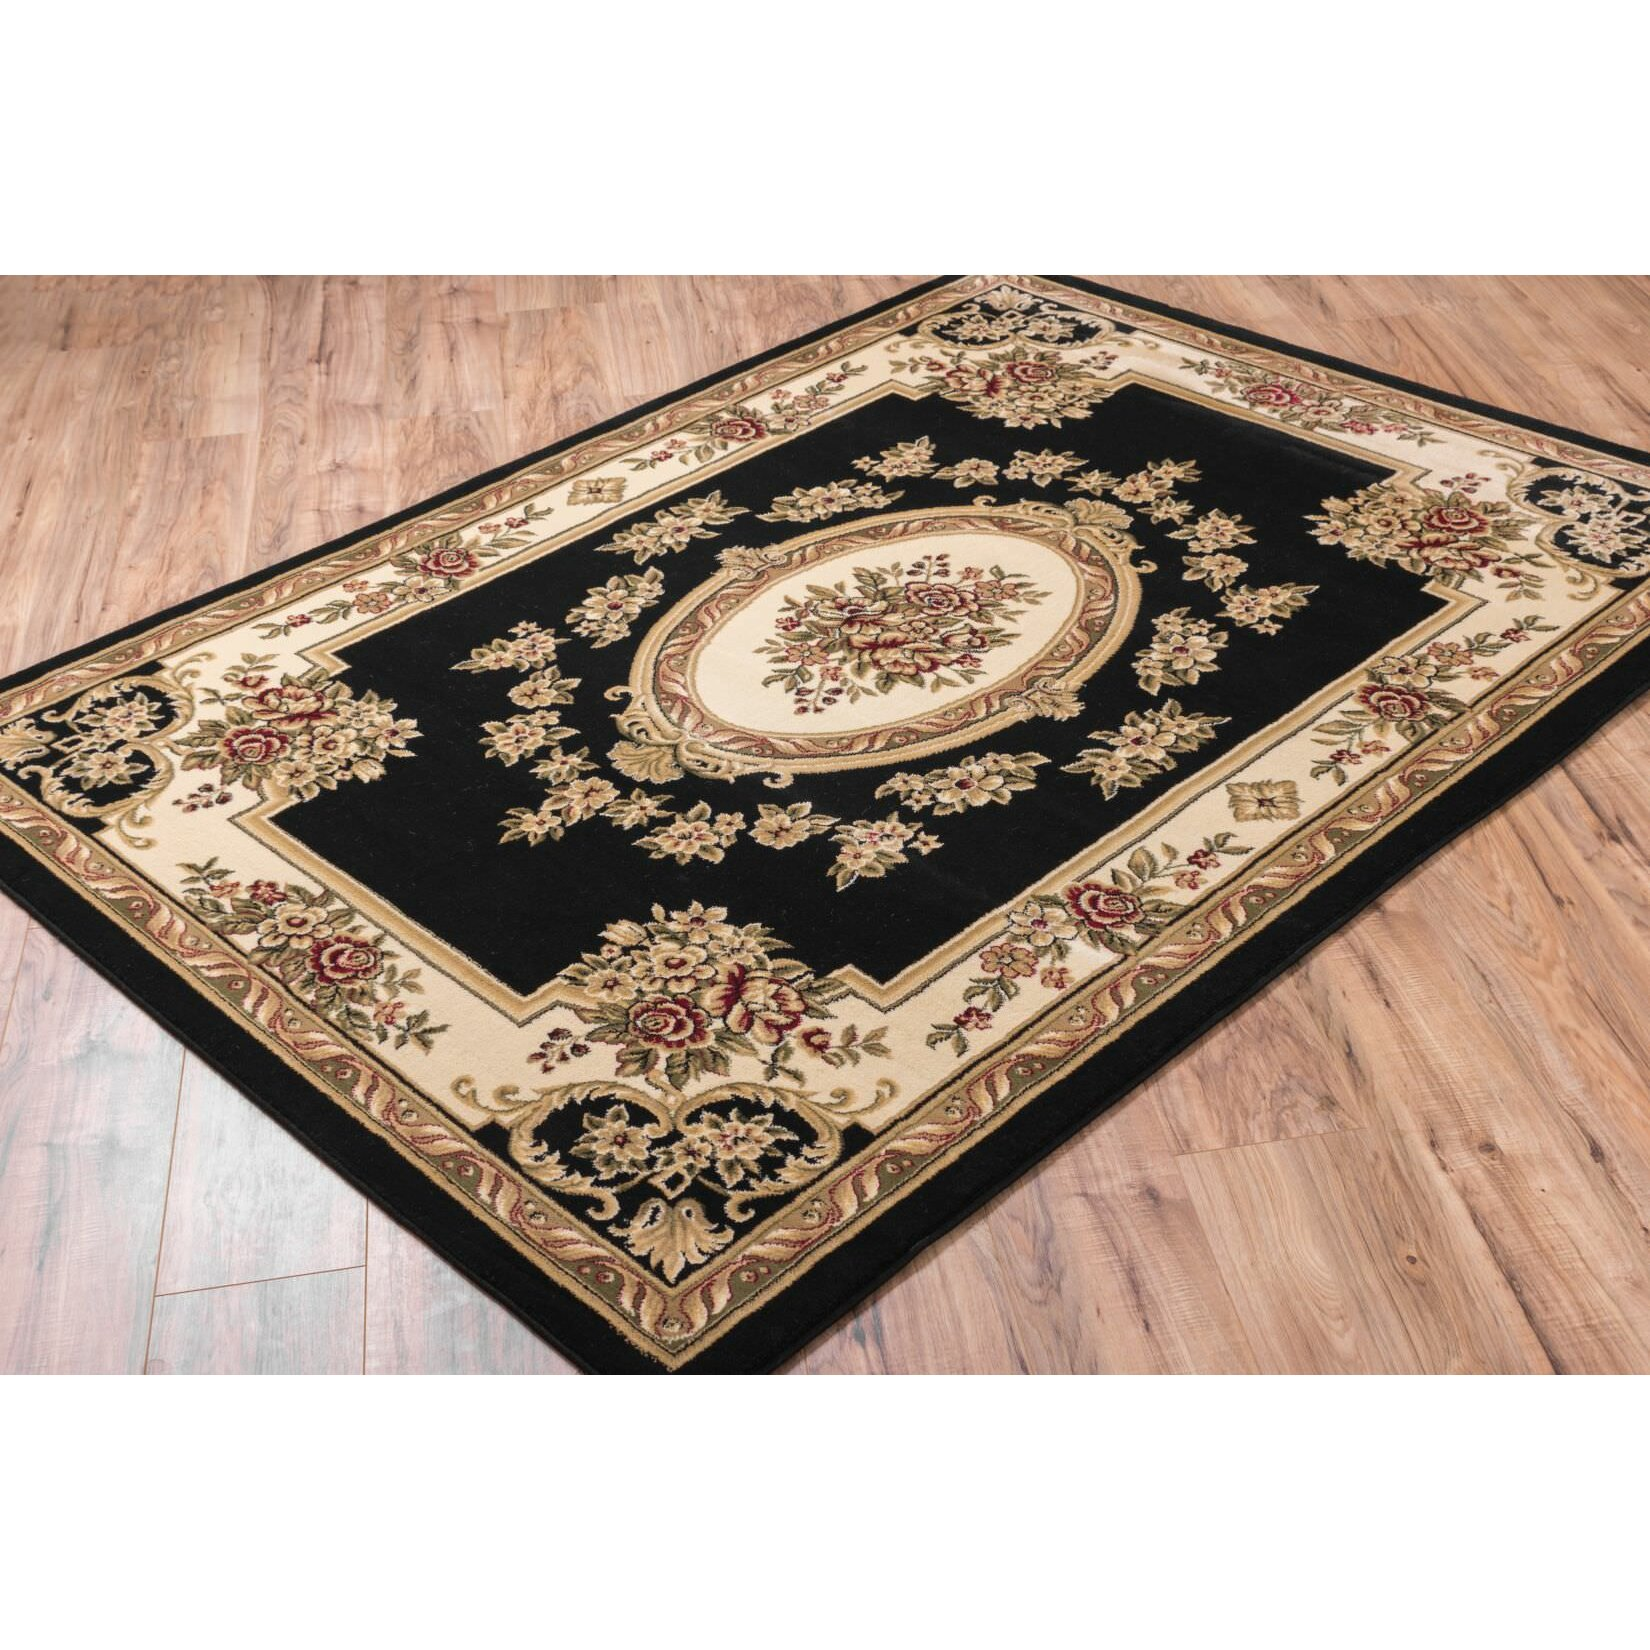 Well Woven Timeless Le Petit Palais Black Area Rug